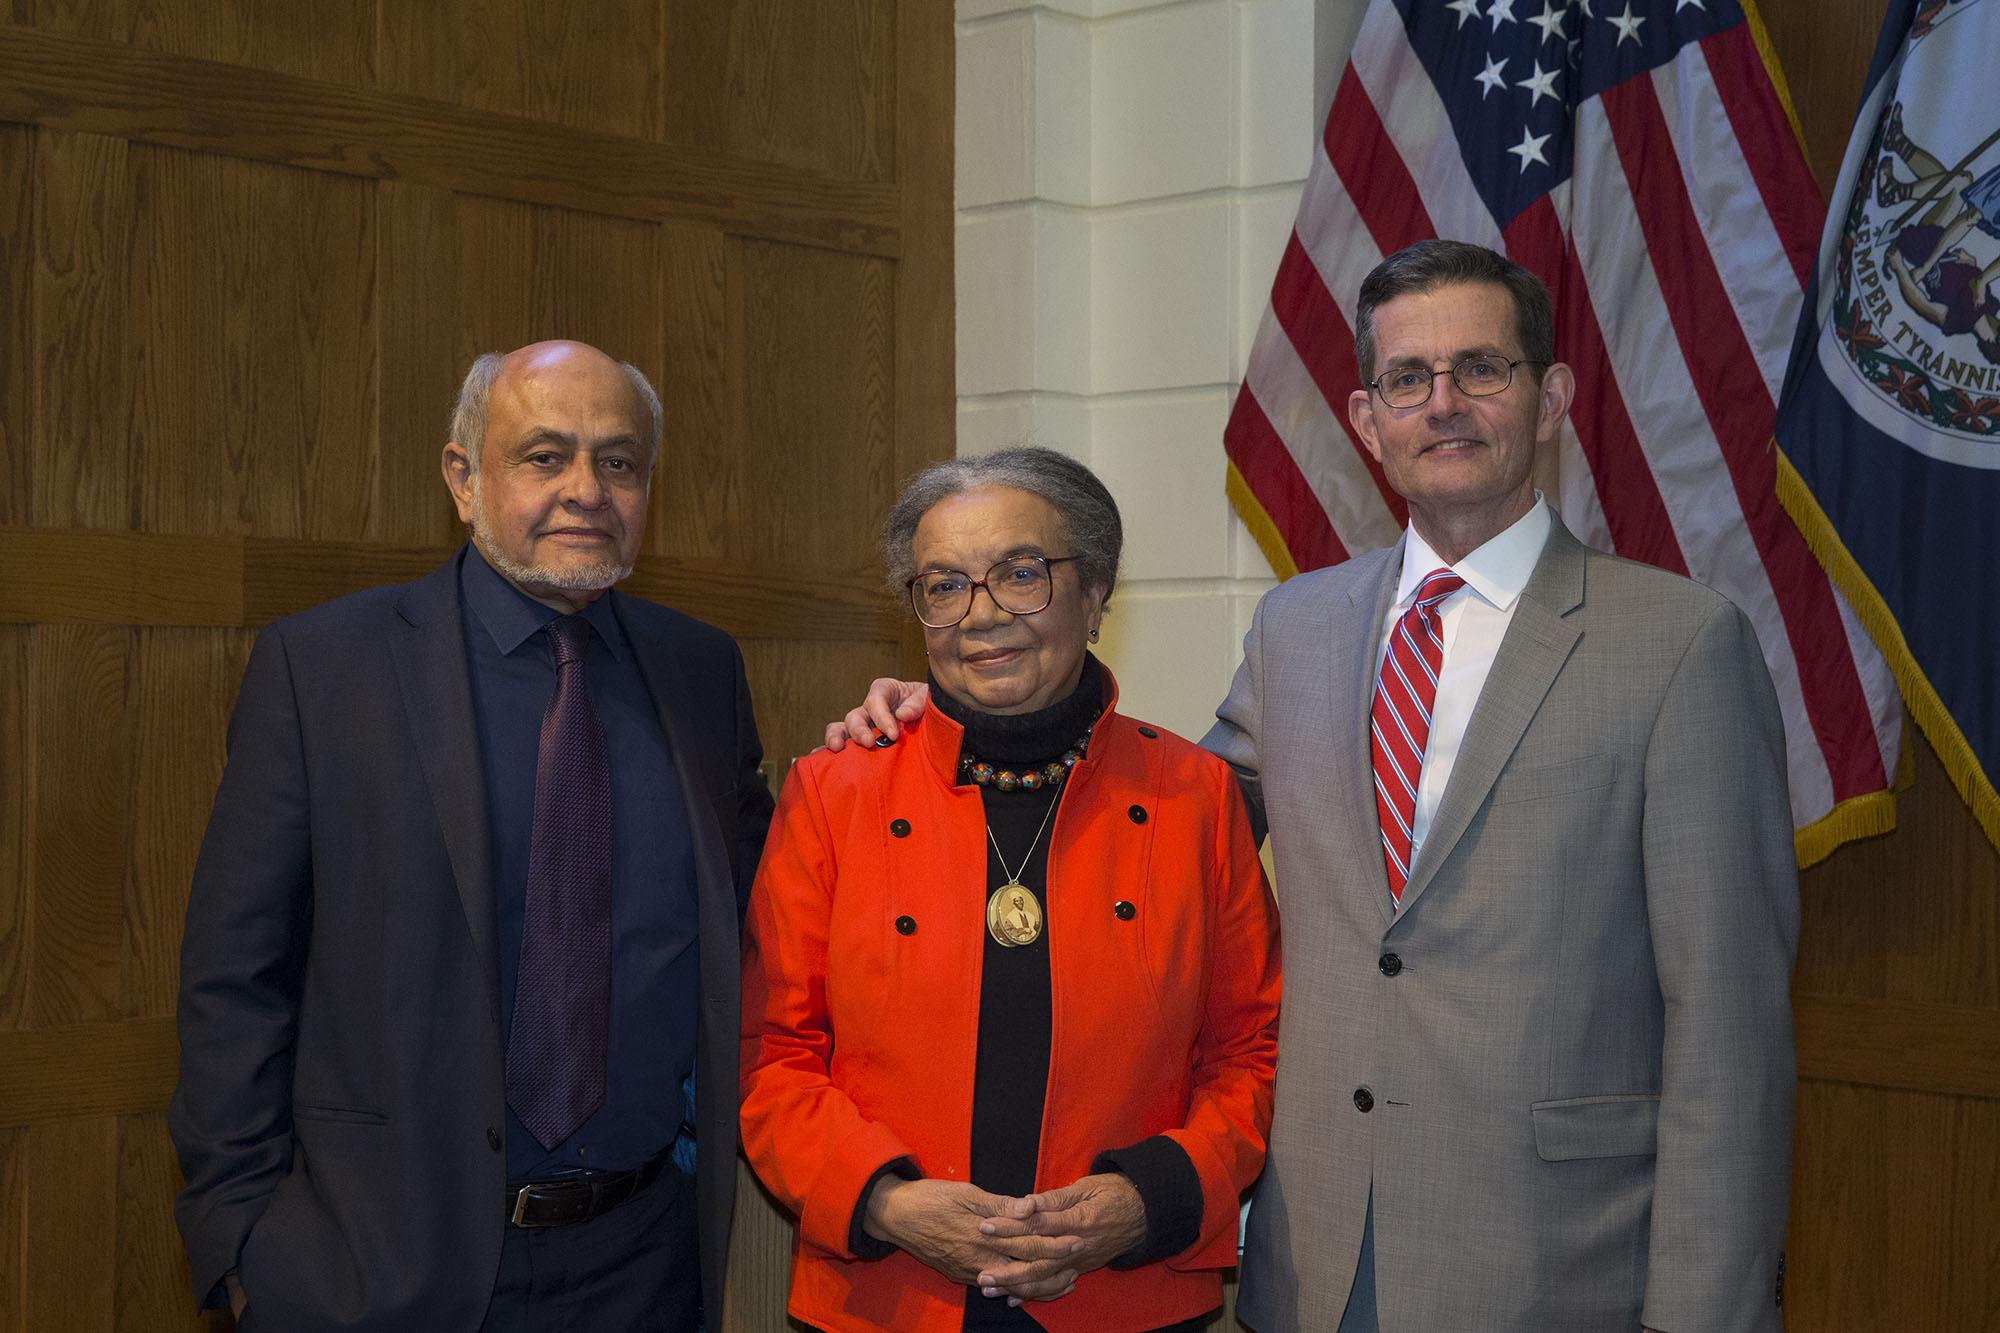 From left, Thomas Jefferson Foundation Medal recipients Cecil Balmond, Marian Wright Edelman and John Gleeson. Gordon Moore, not pictured, delivered his remarks via video link.